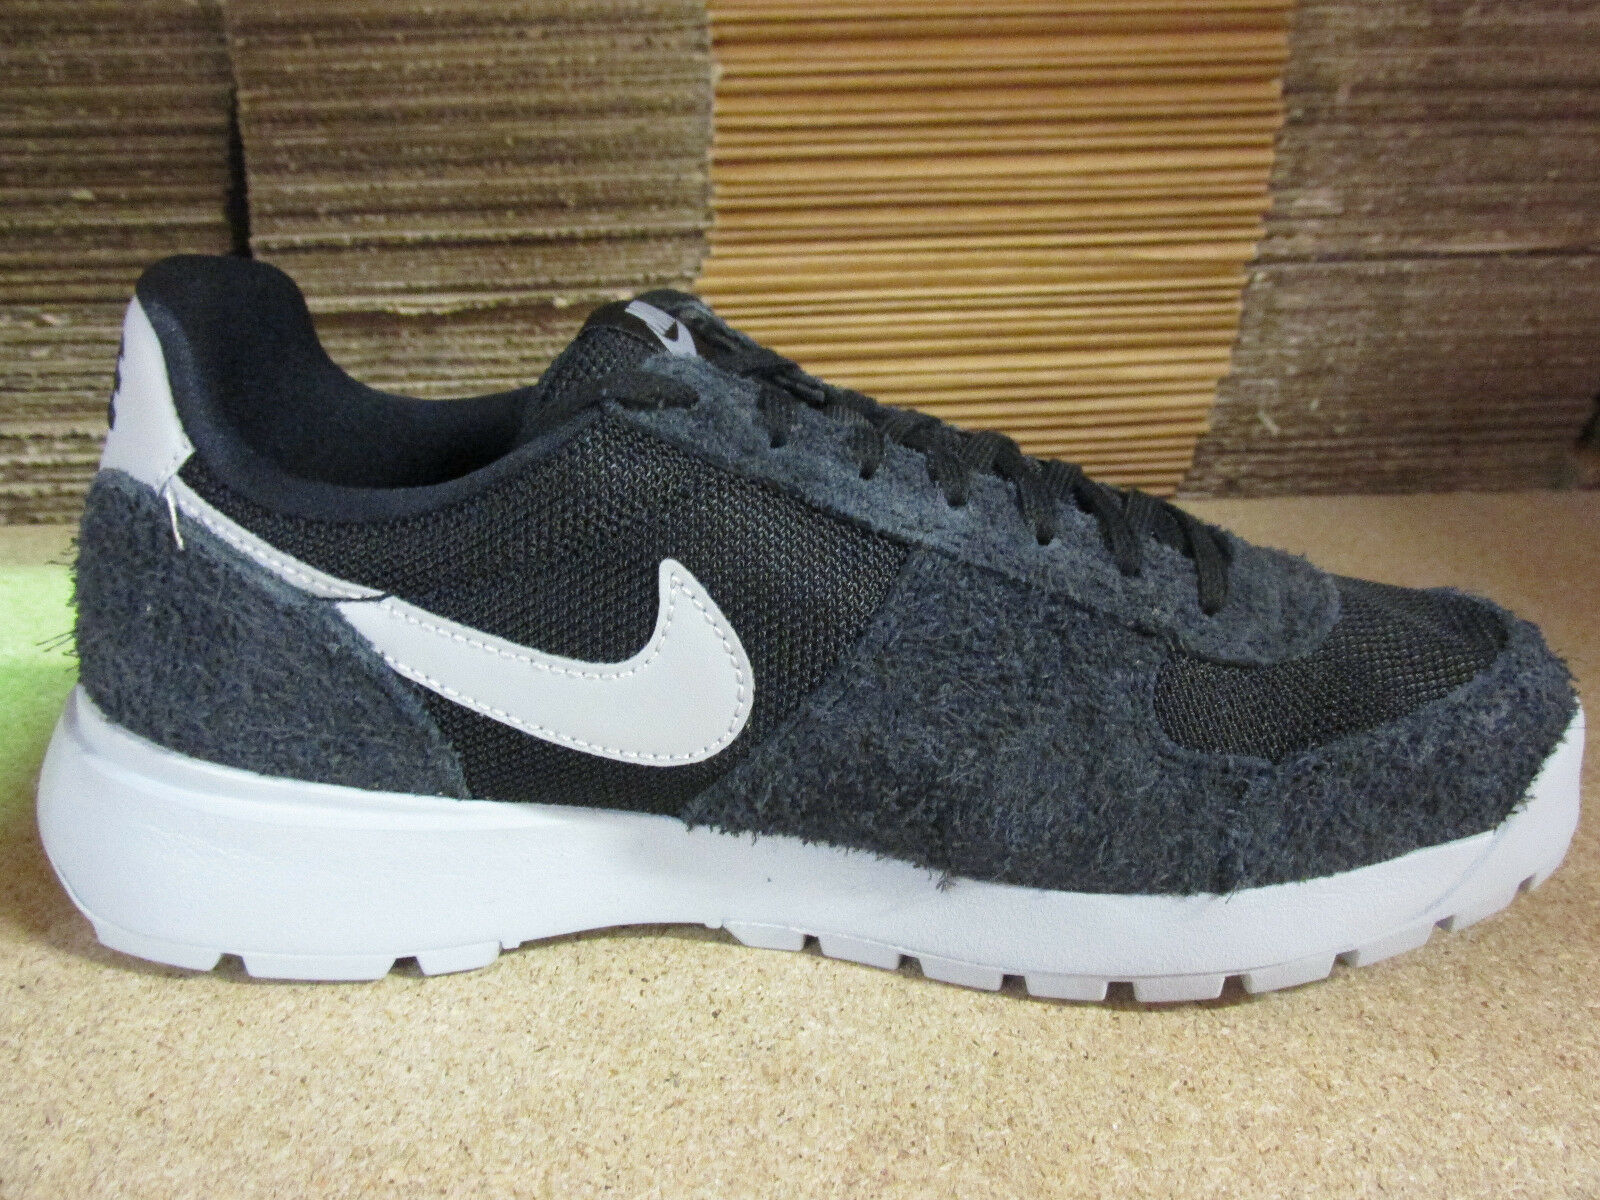 Nike Lavadome Ultra Mens Trainers Shoes 844574 002 Sneakers Shoes Trainers 3de0b0